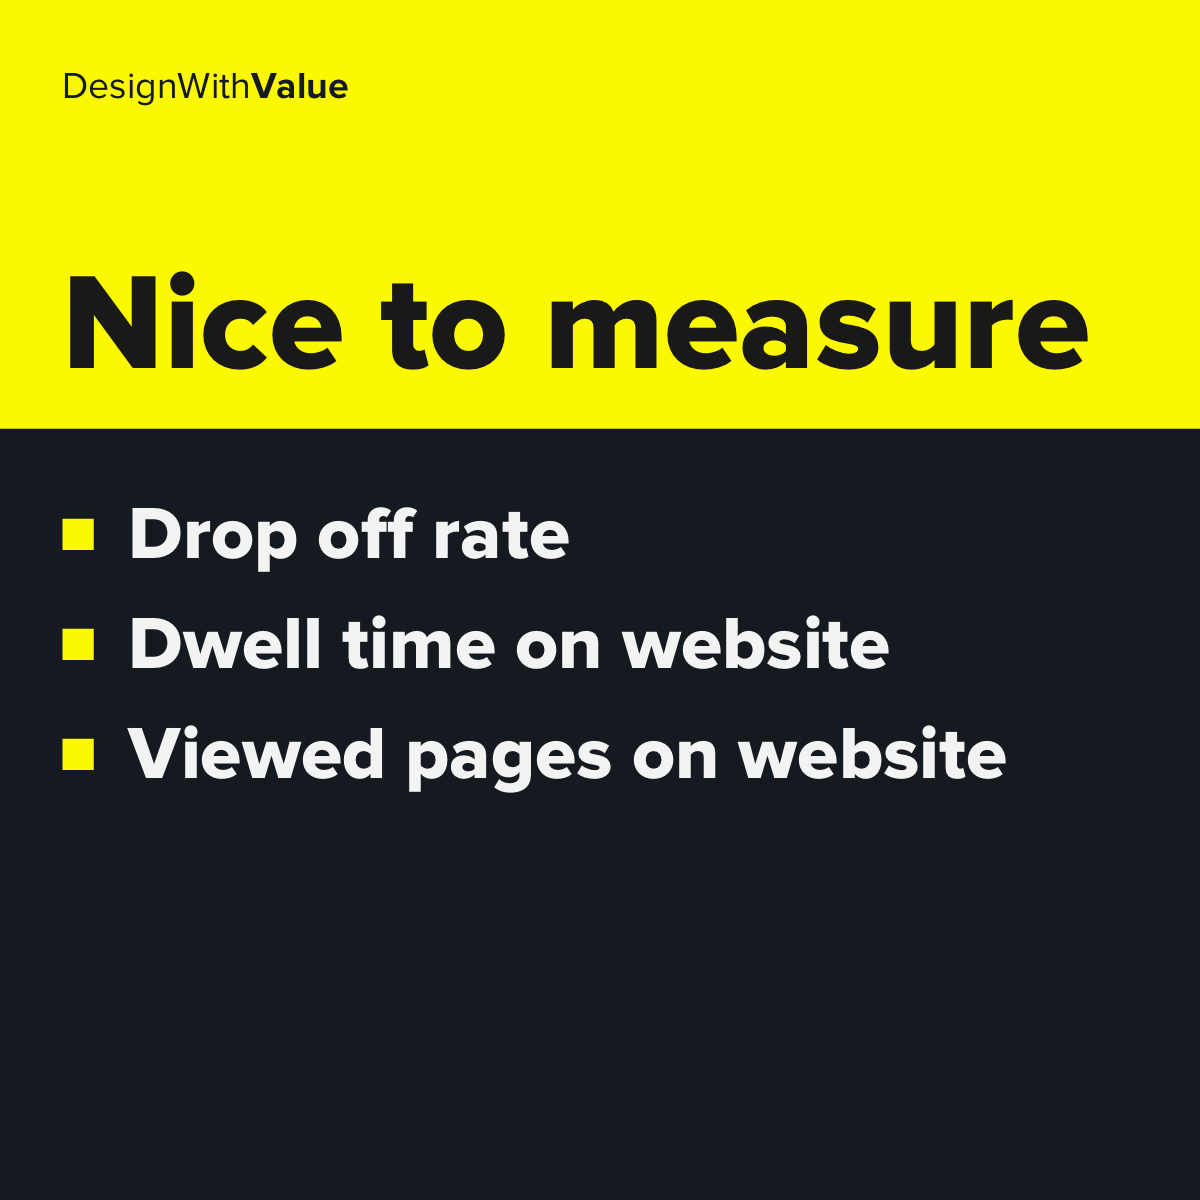 Nice to measure metrics: Drop off rate, dwell time on website, viewed pages on website